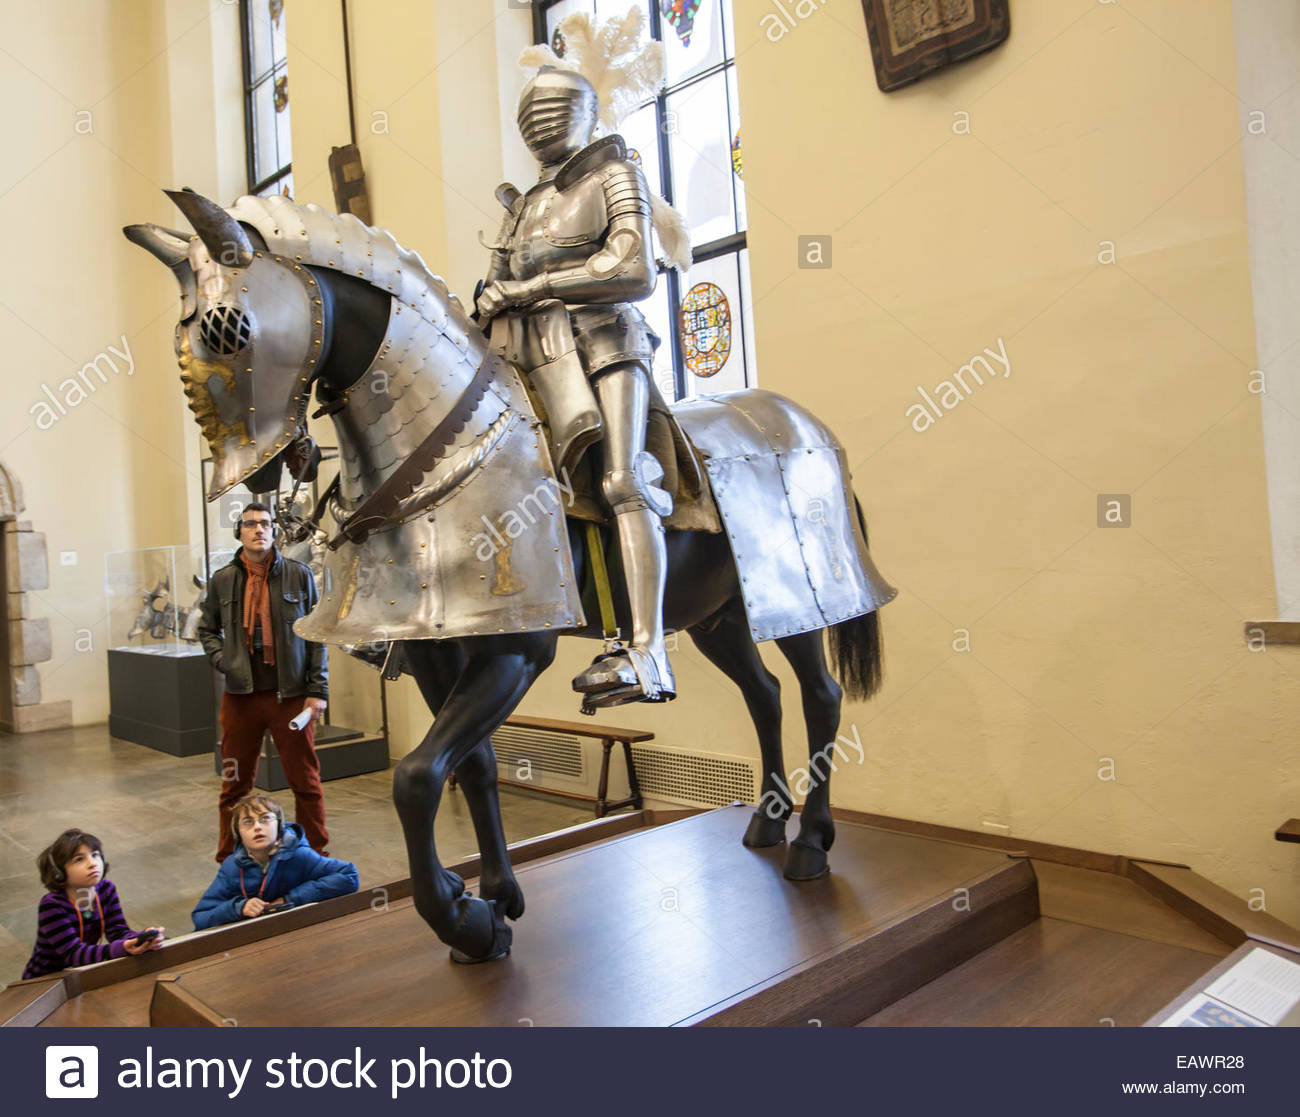 Children gaze up at an armored horse and knight on exhibit in the Philadelphia Museum of Art. - Stock Image